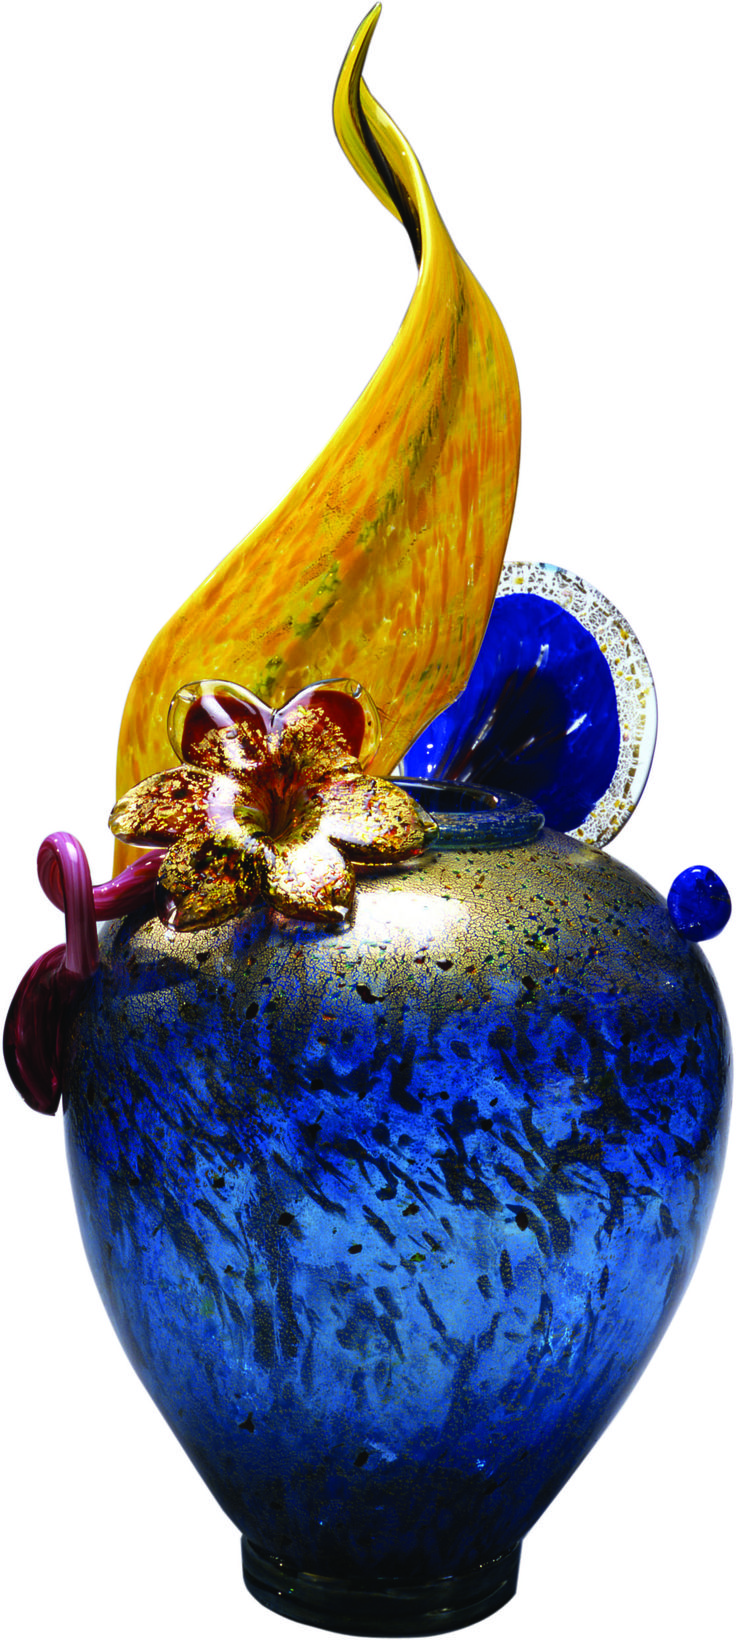 Dale Chihuly: Glass Art, Venetian Glass, Glass Sculpture, Glass Dale Chihuly, Glass Chihuly, Glass Vase, Chihuly Glass